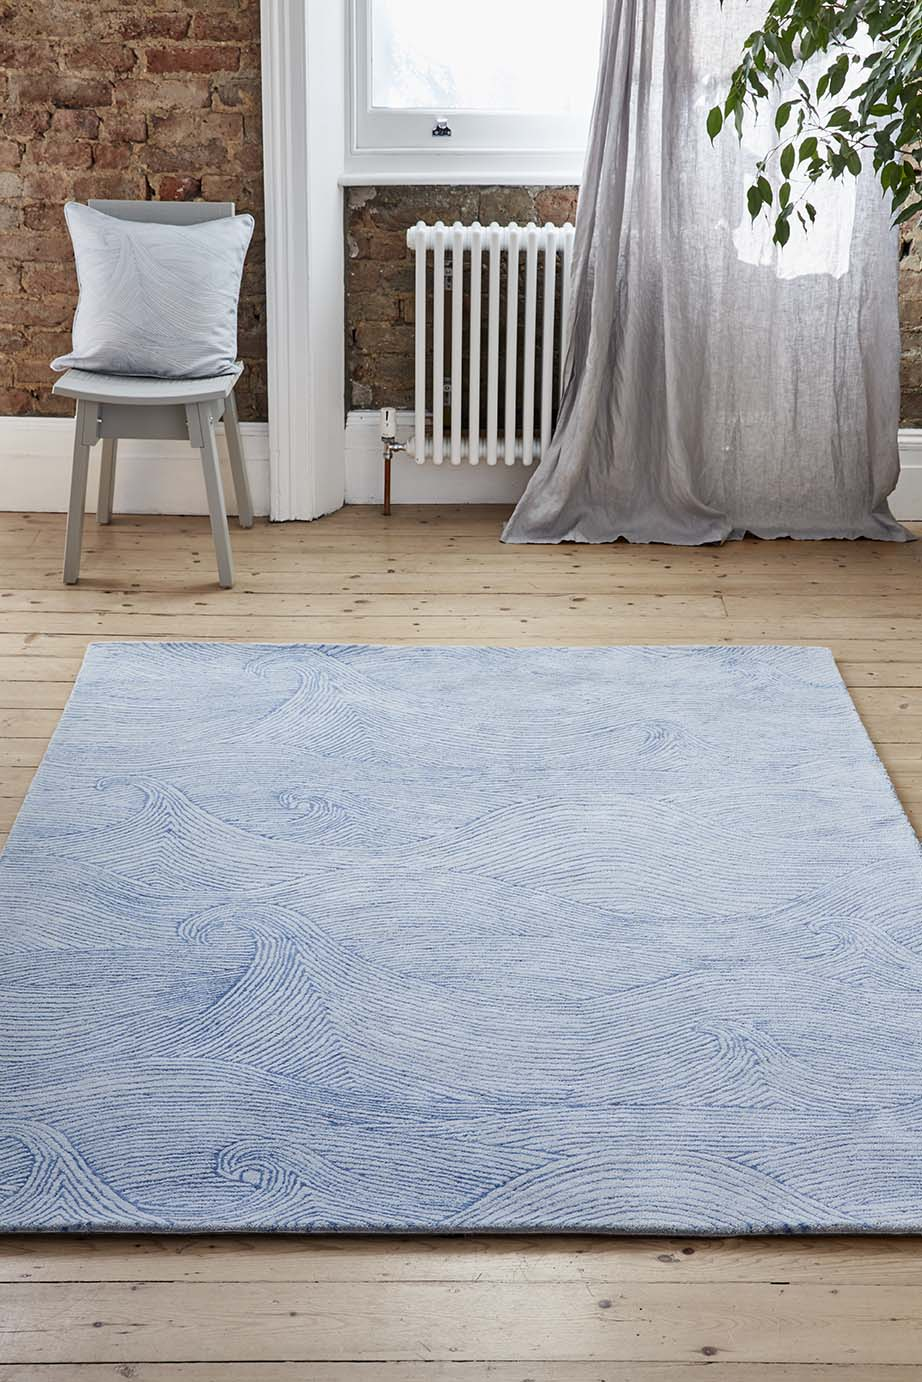 Seascape rug in Summer. Photograph by Alun Callender